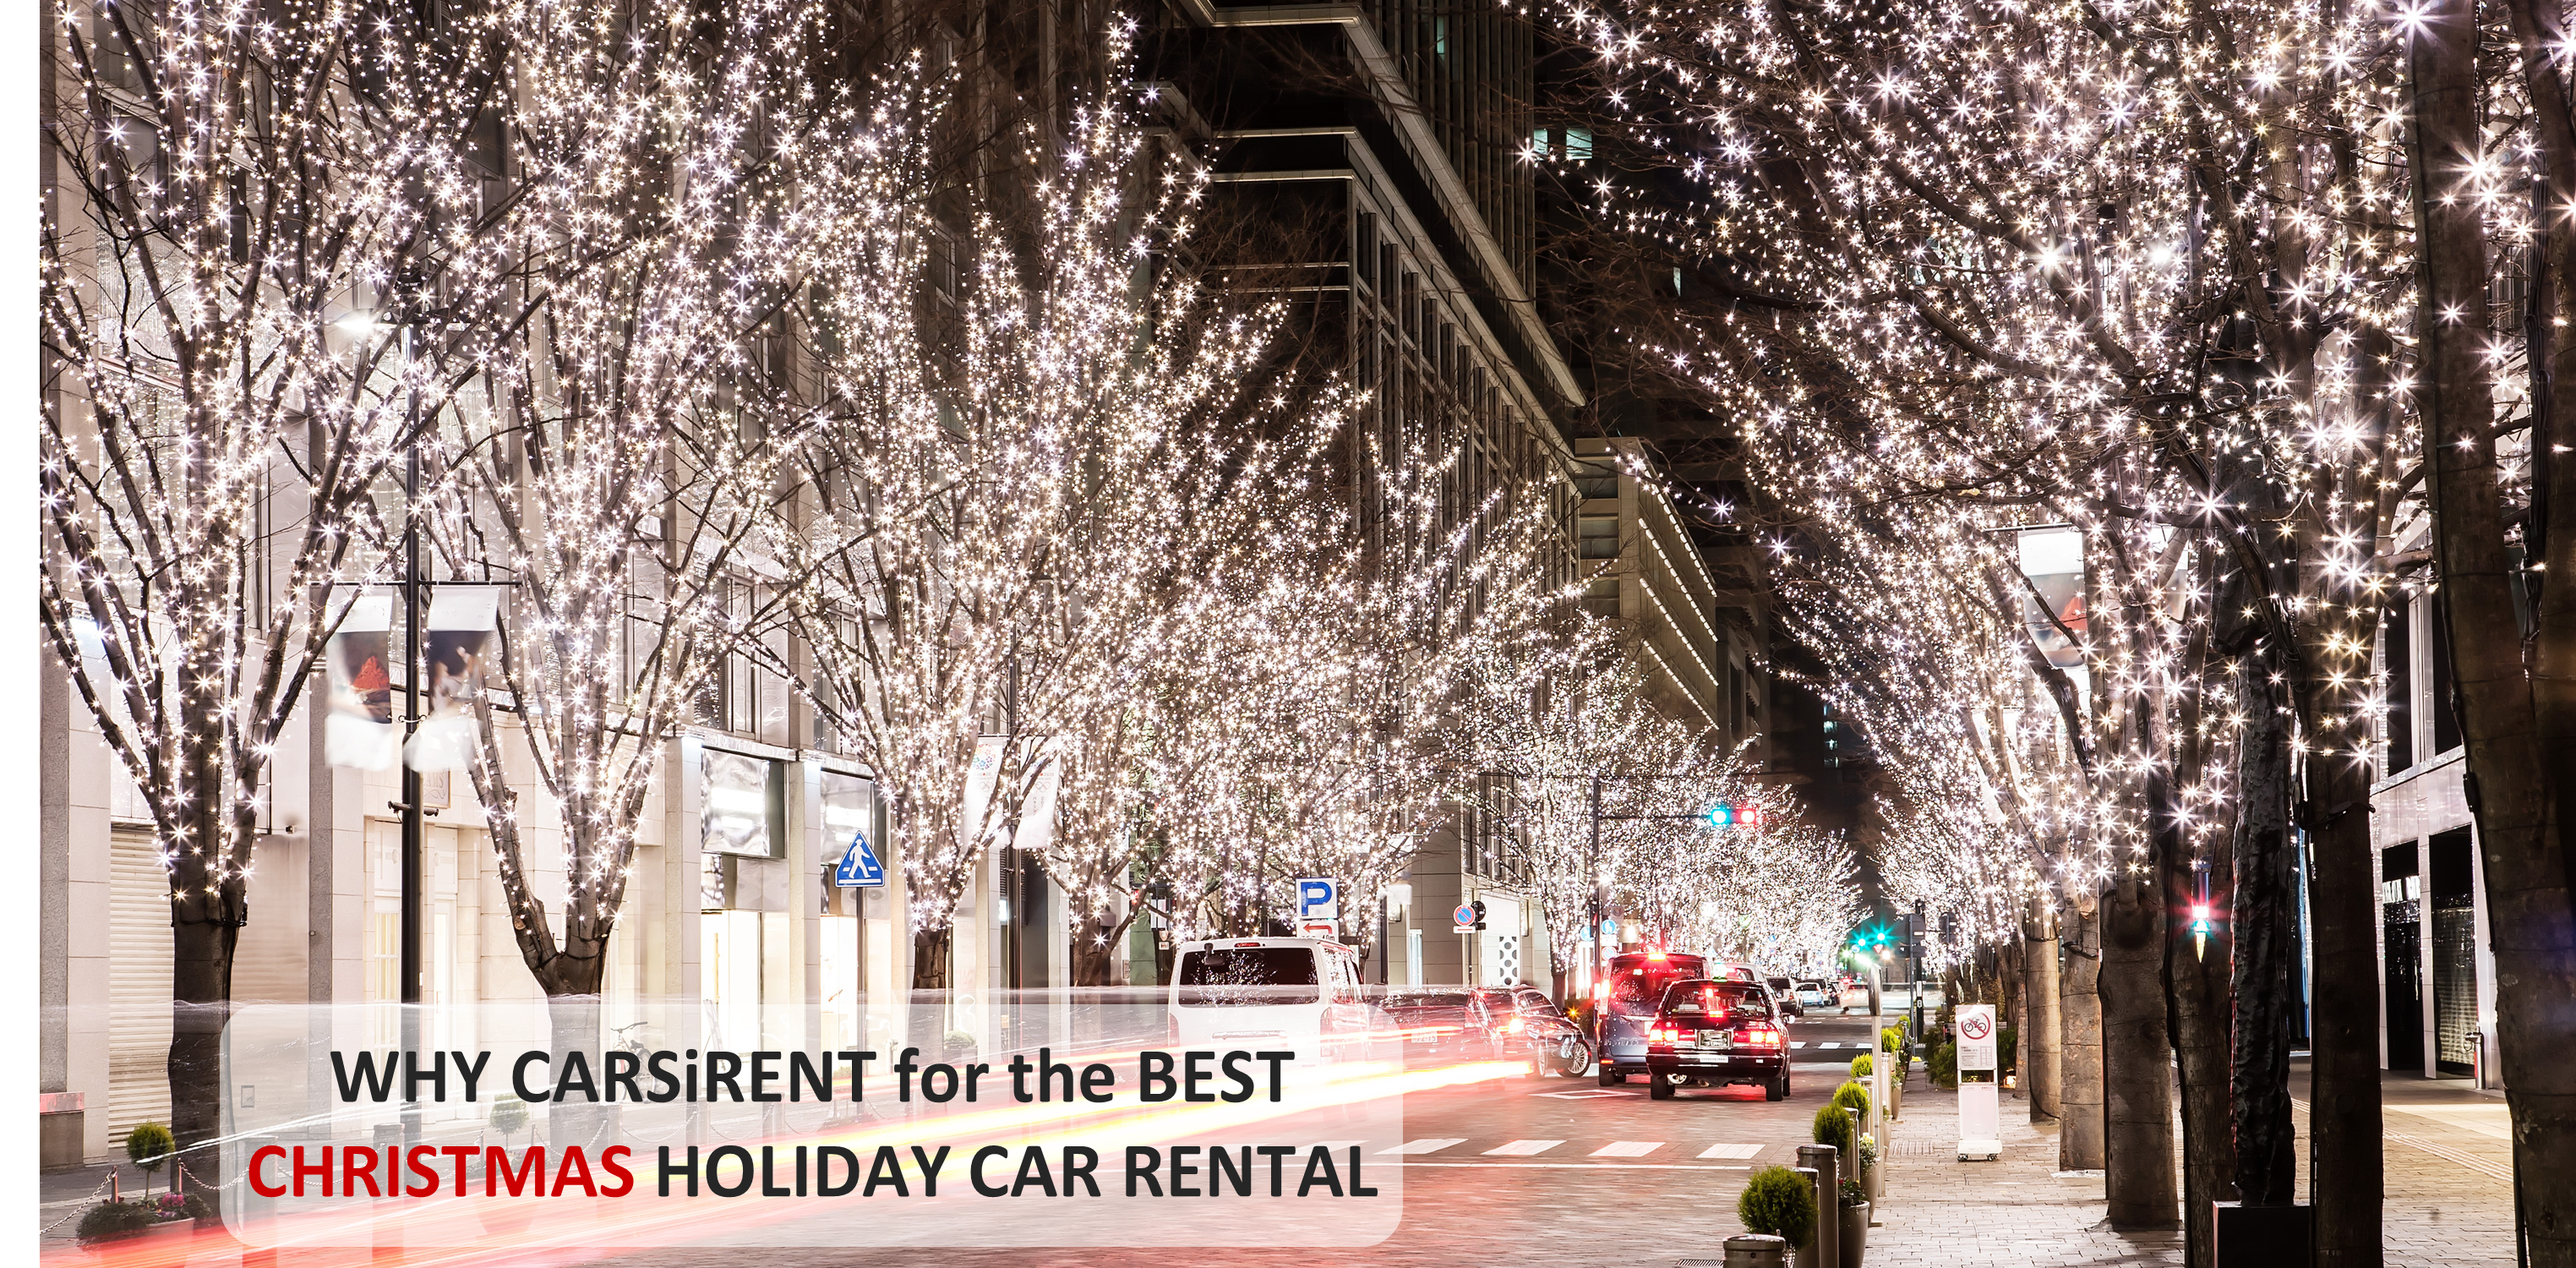 Why Carsirent for the Best Christmas Holiday Car Rental?